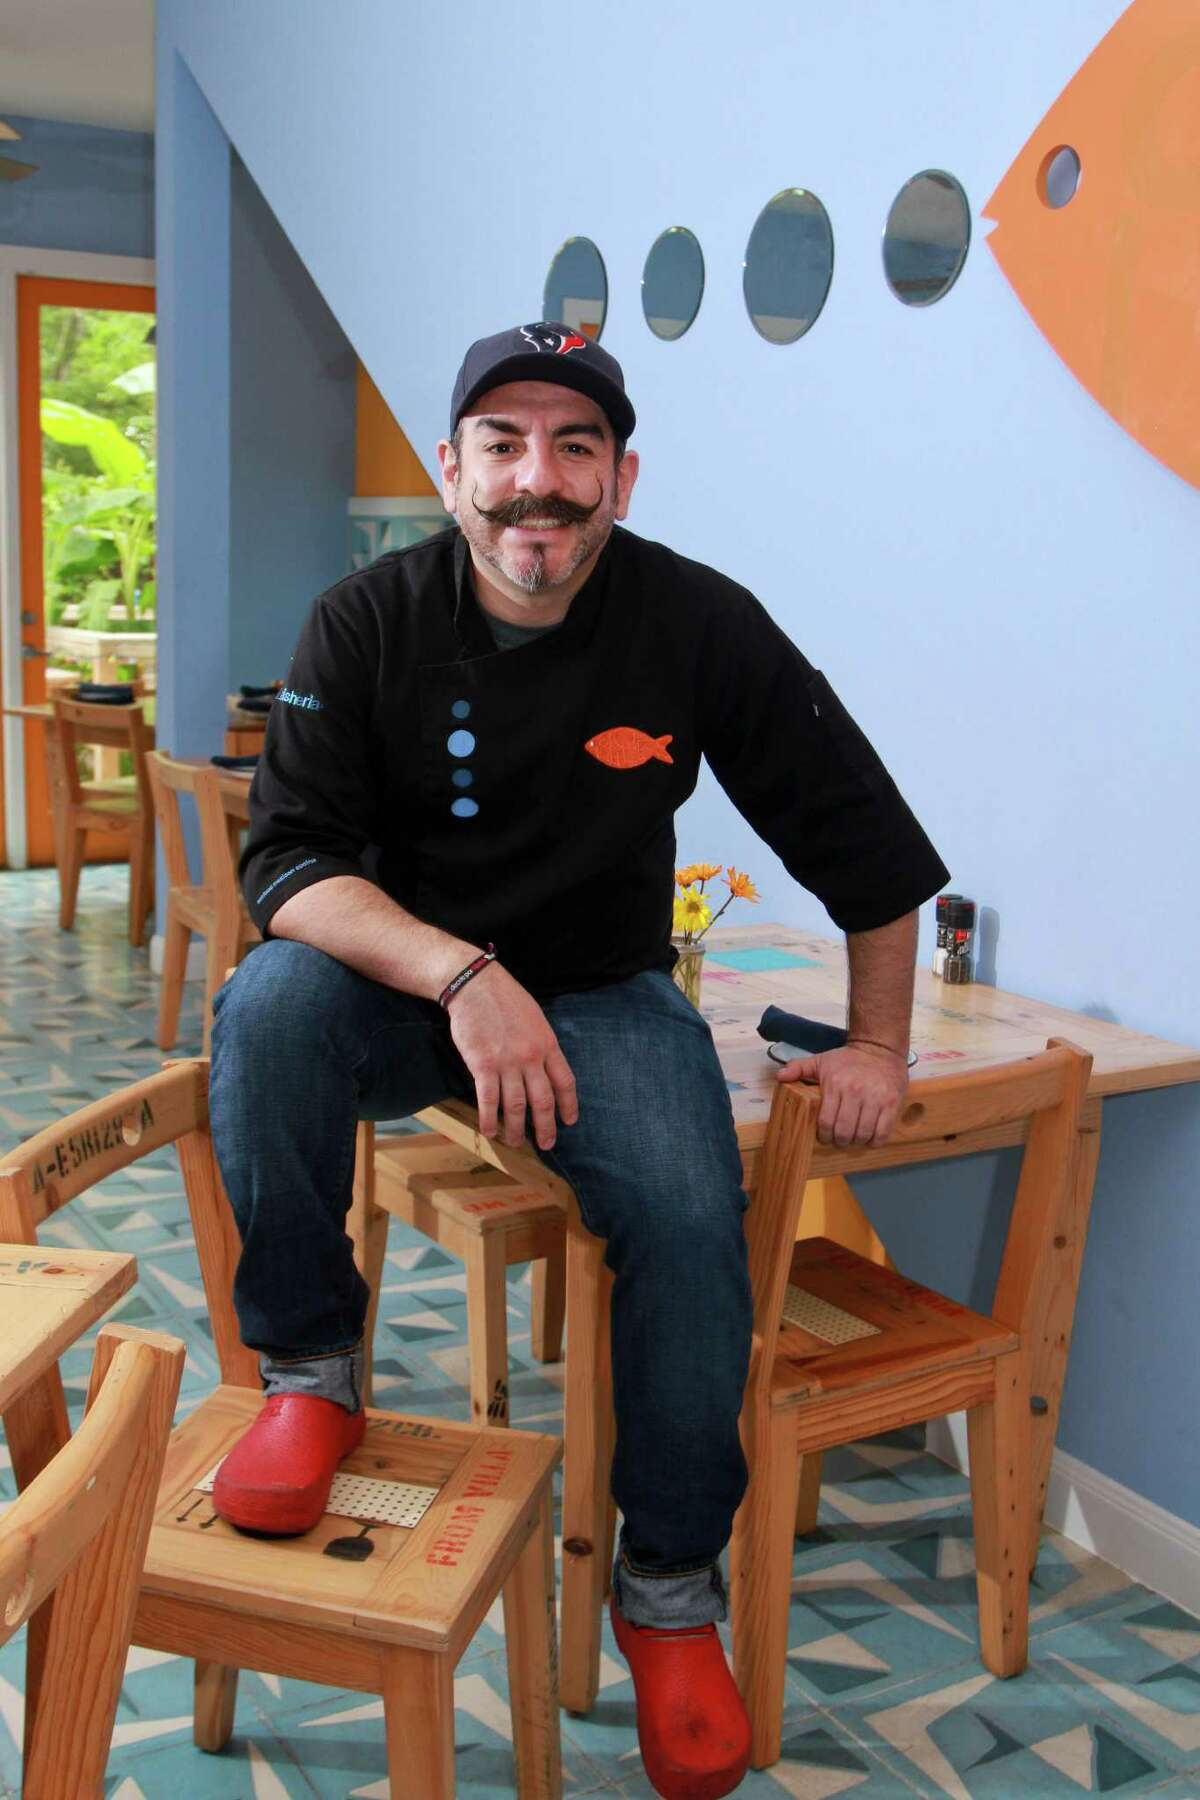 (For the Chronicle/Gary Fountain June 3, 2014) Chef Aquiles Chavez of La Fisheria restaurant.